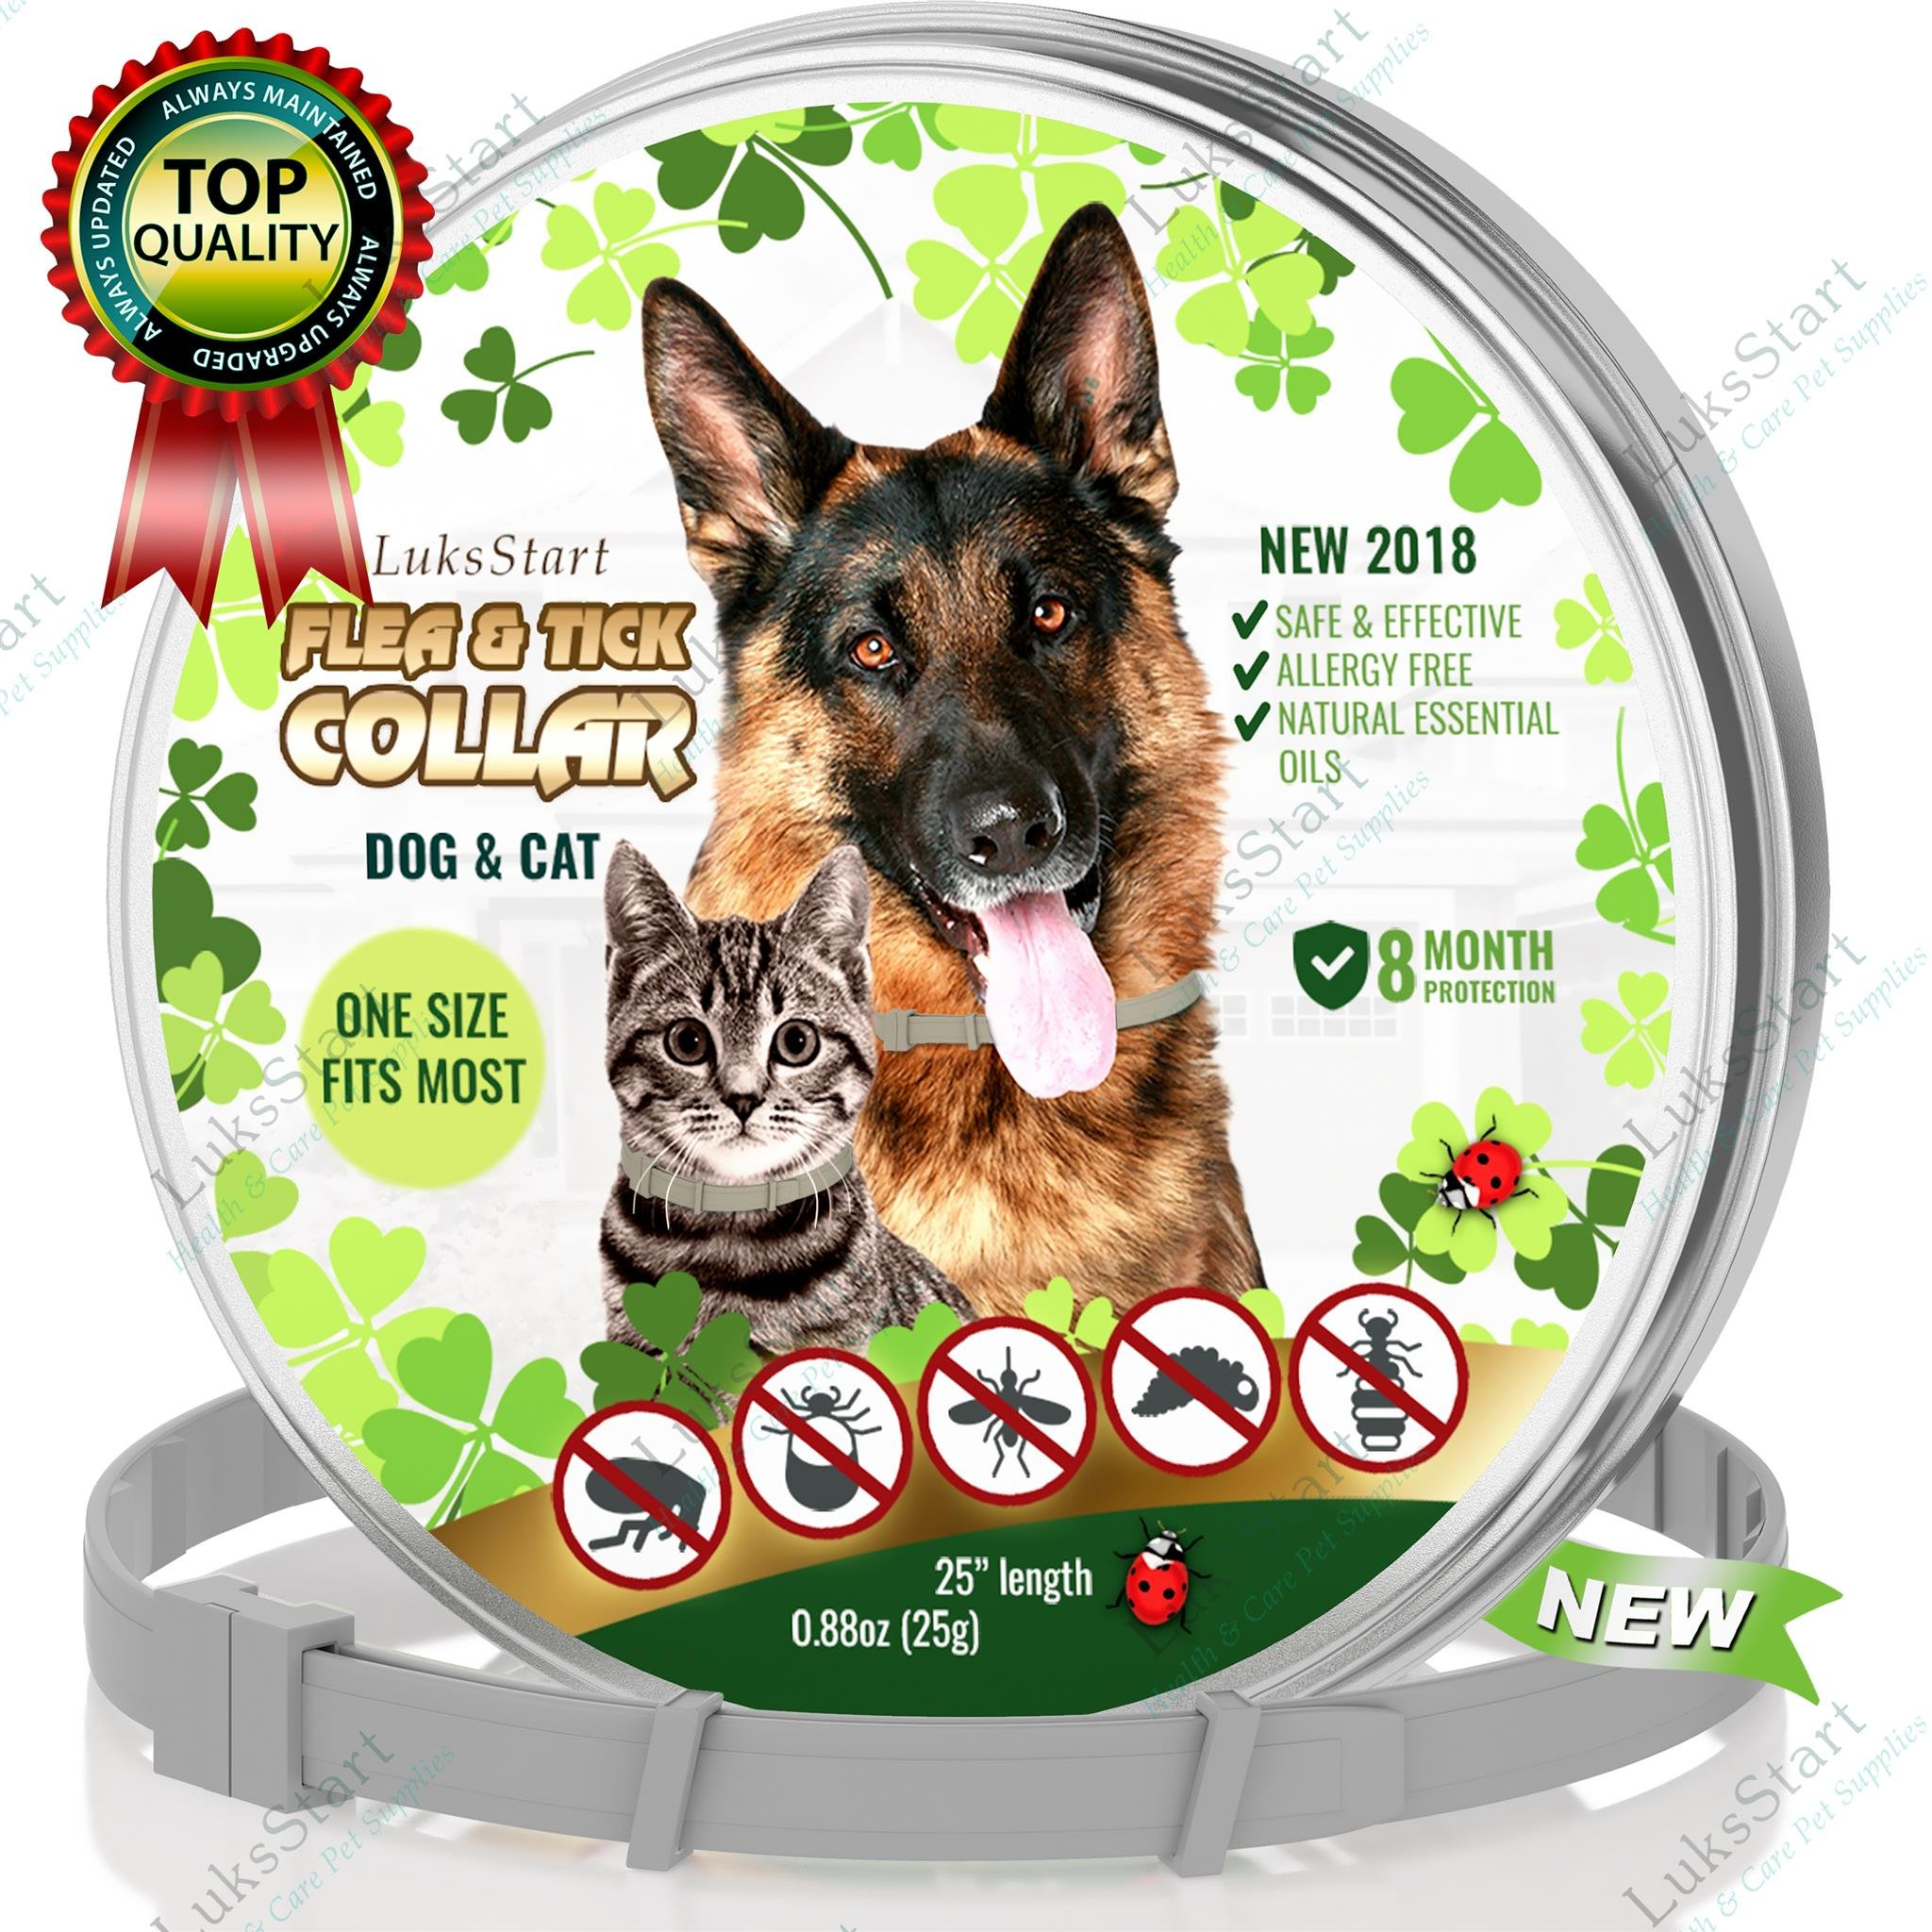 LuksStart Best Natural Pest Control Collar for Dogs & Cats: Hypoallergenic Waterproof Protection, Long Lasting Flea and Tick Prevention, Fully Adjustable one Size Fits All! (Natural Pest Control)